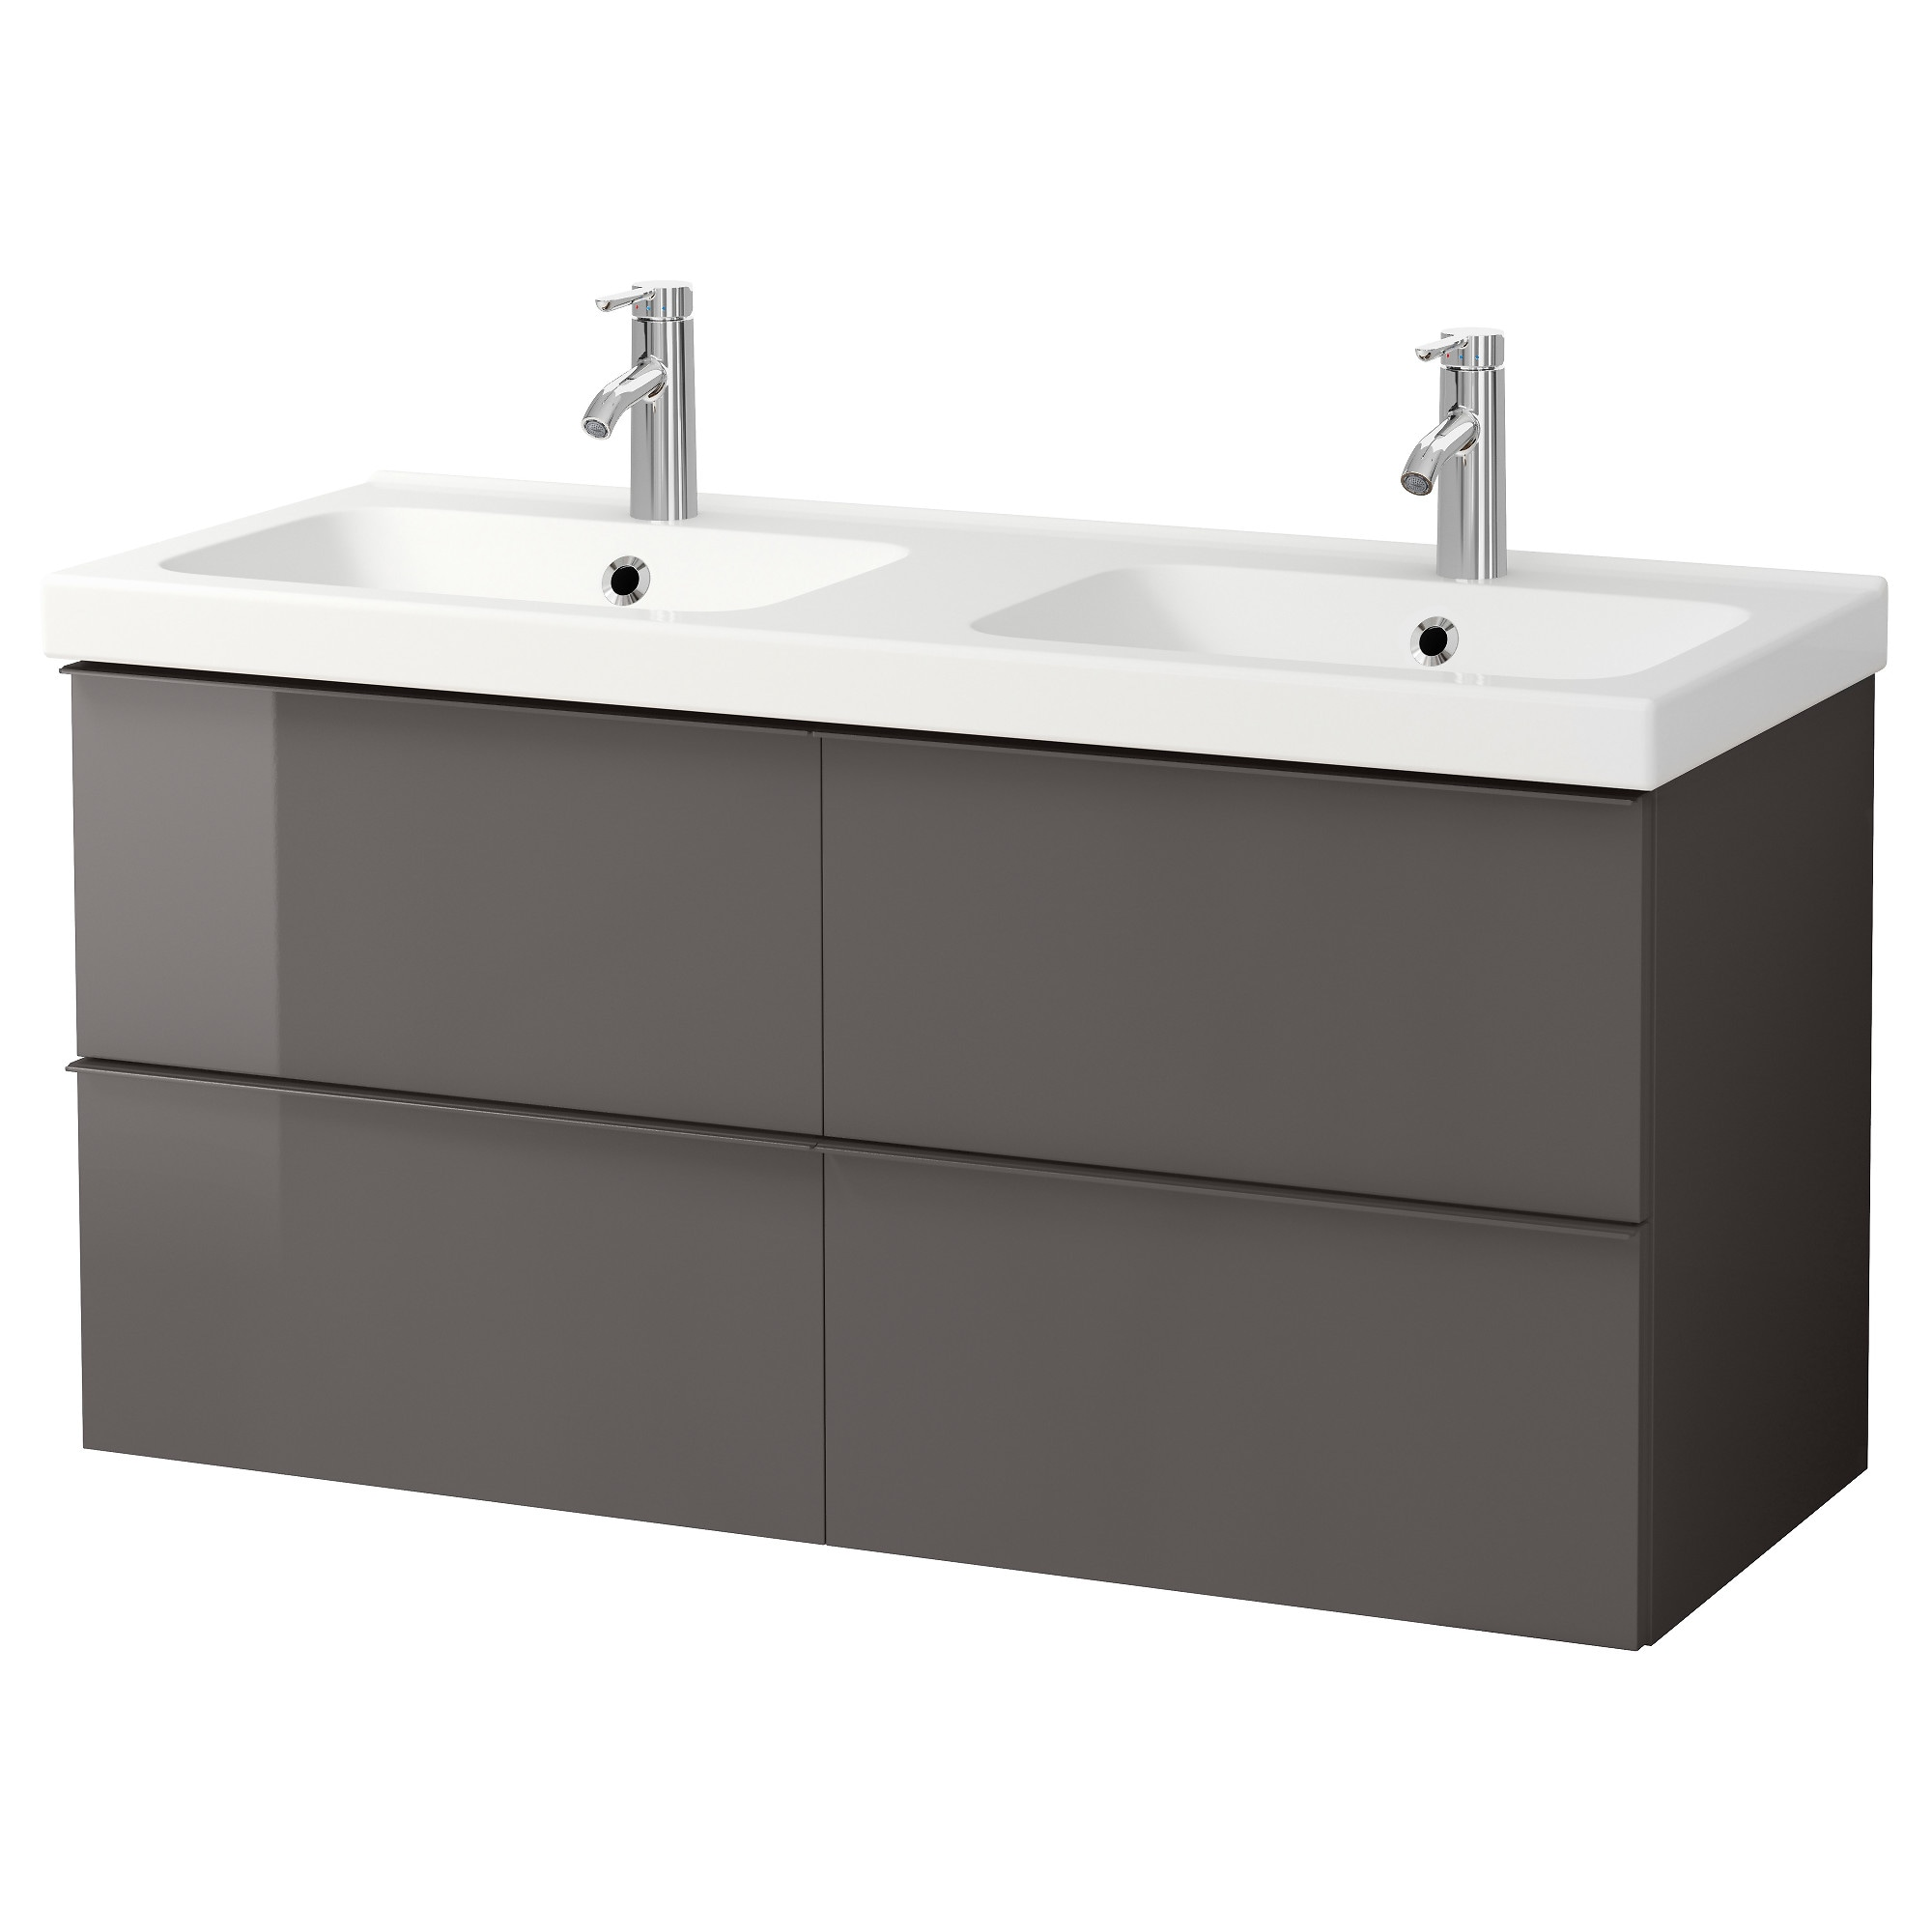 Bathroom sink cabinets ikea - Godmorgon Odensvik Sink Cabinet With 4 Drawers High Gloss Gray Ikea